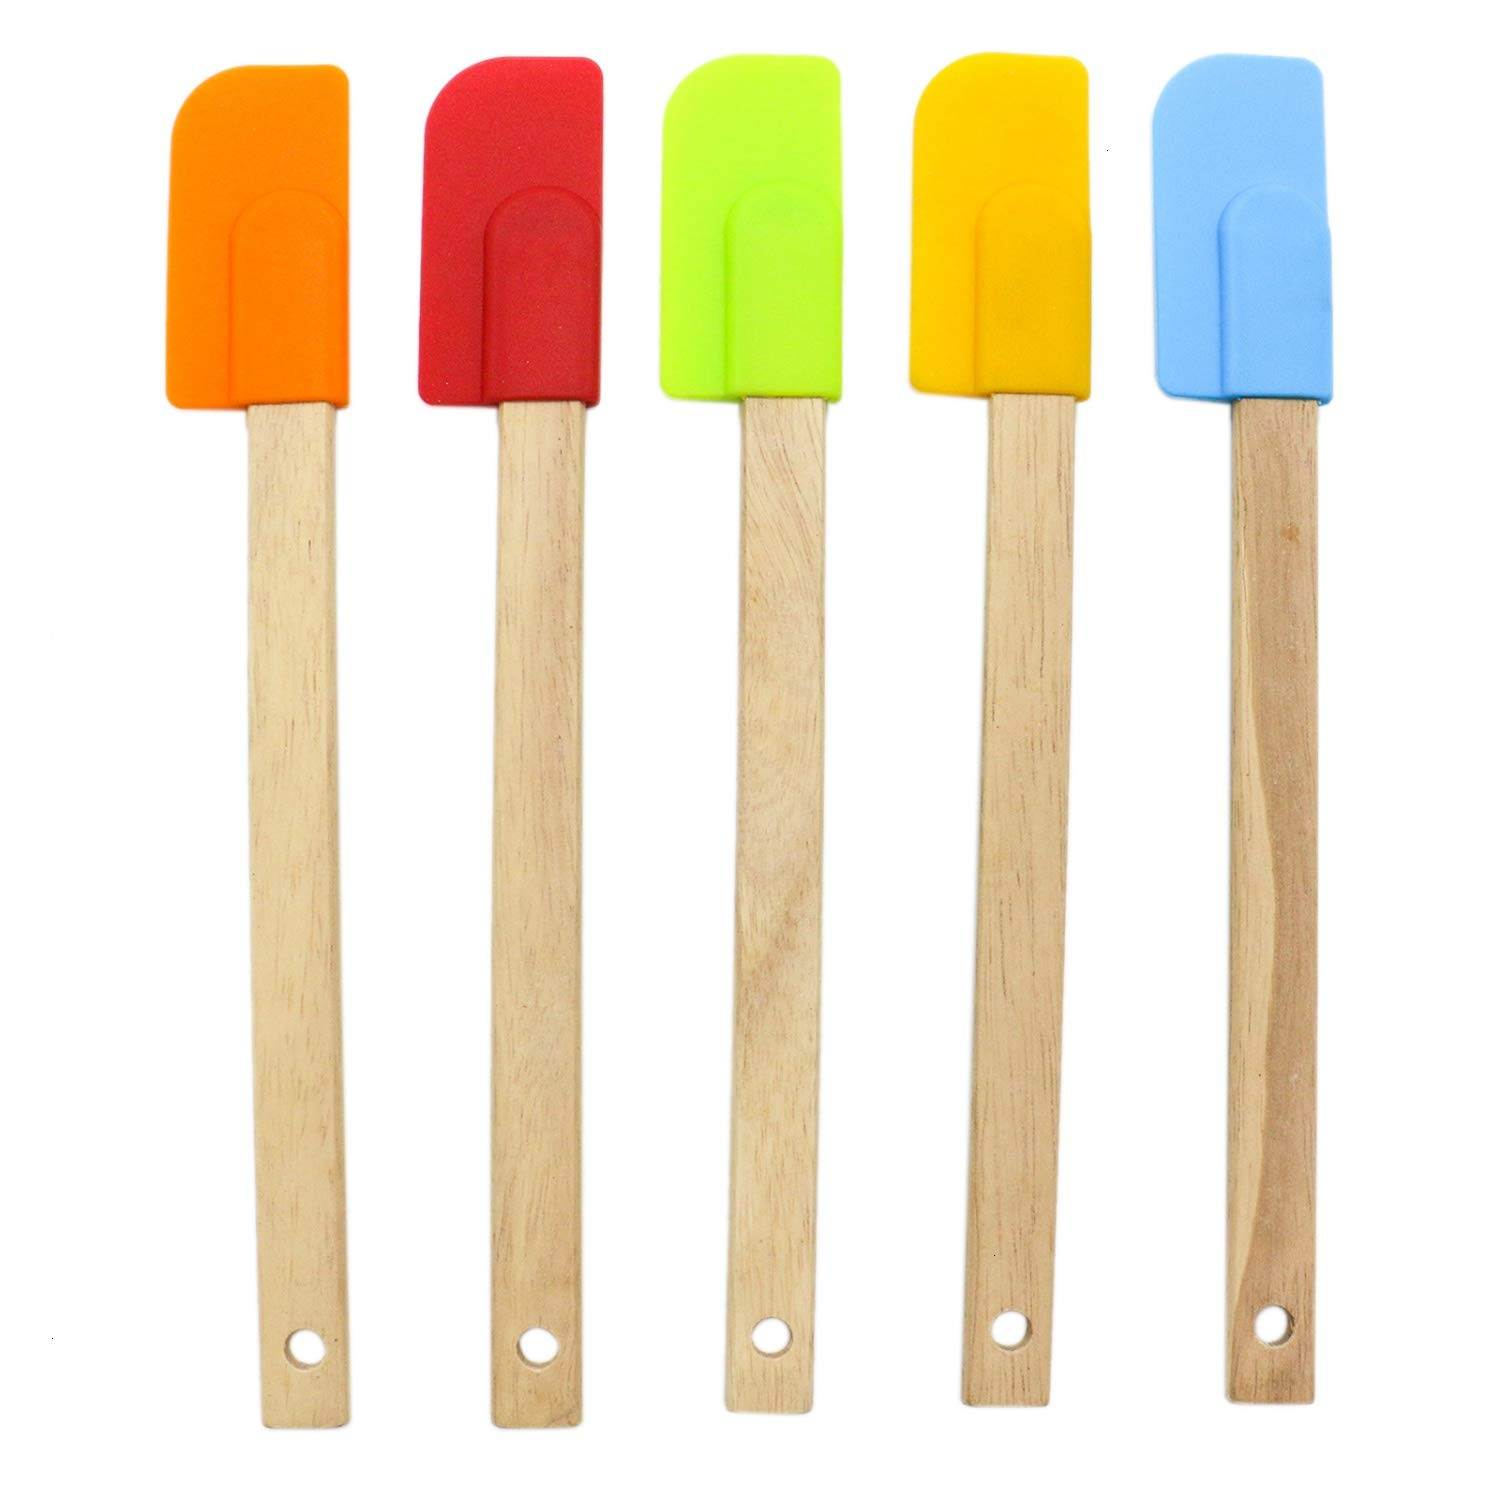 HUELE 5 Pcs Silicone Heat Resistant Spatulas Scraper with Wood Handle for Baking Cooking